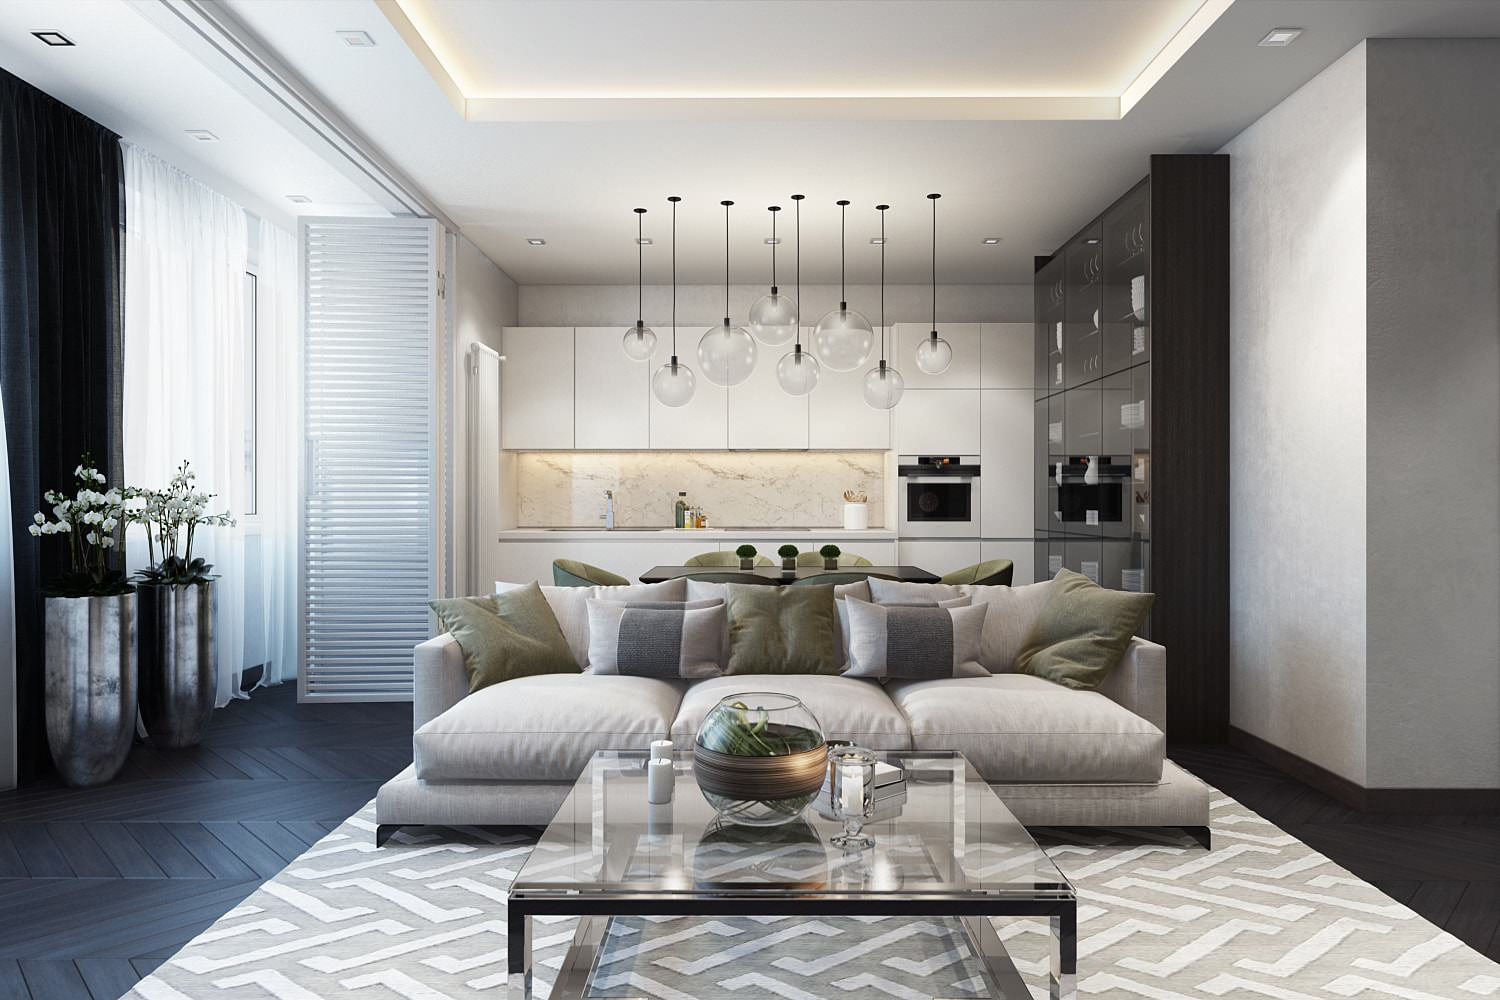 Realtors Use Virtual Staging To Show What Space Can Become. Living Room